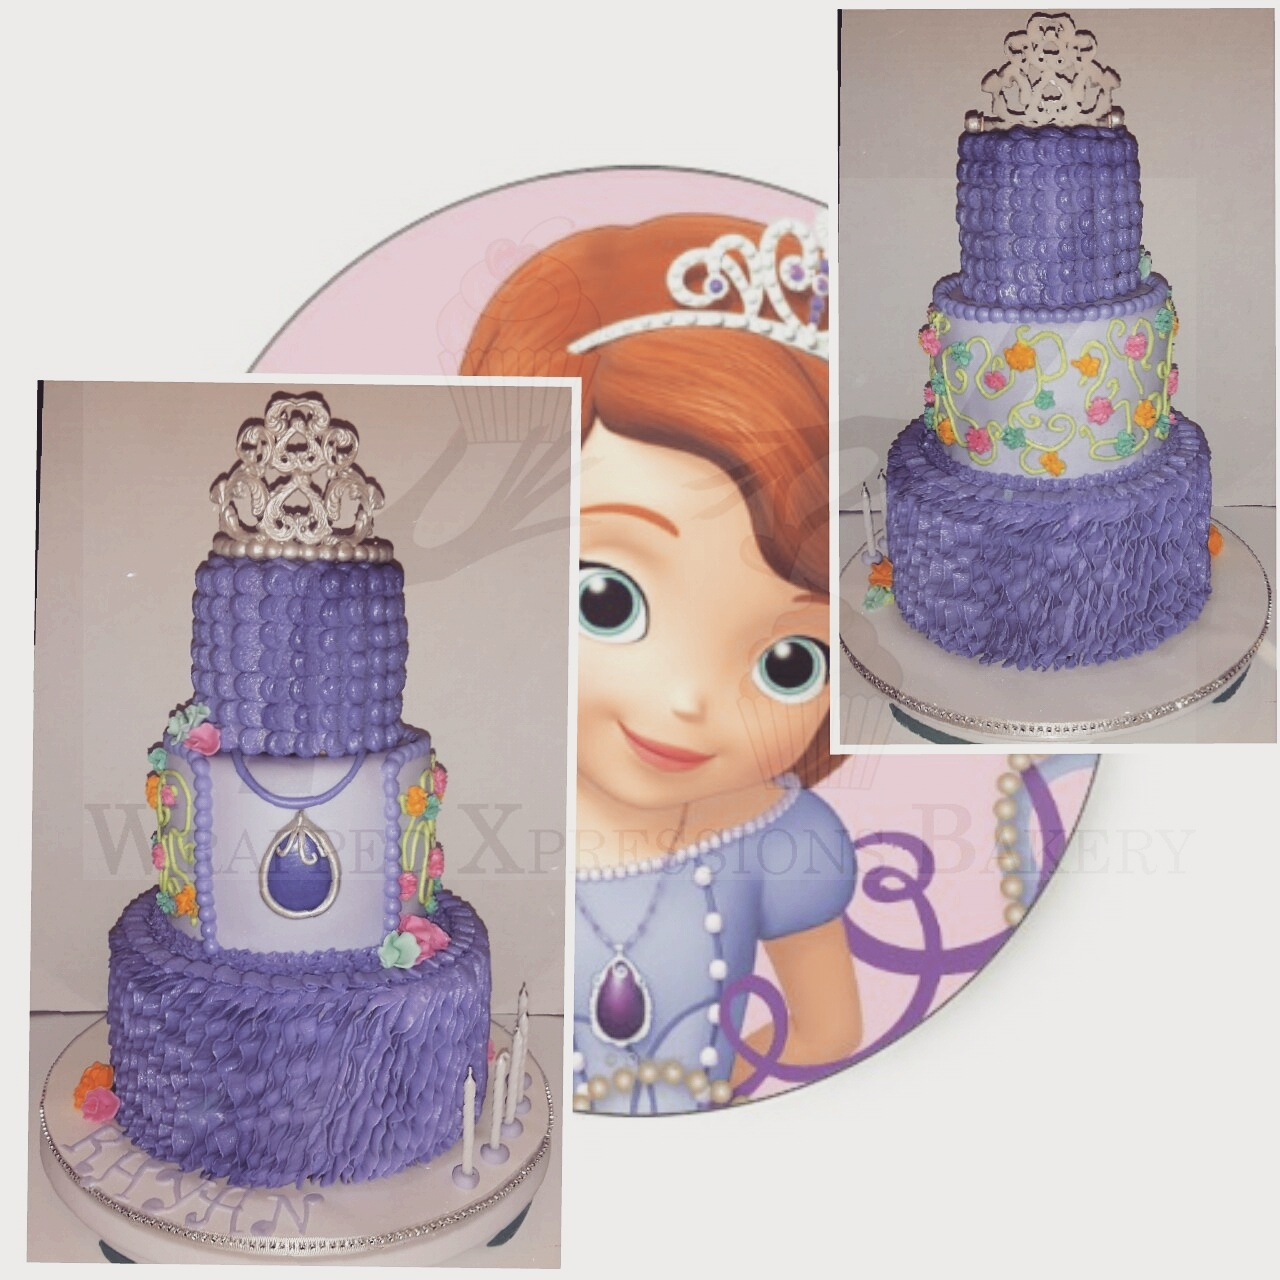 Groovy 3 Tier Sofia The First Birthday Cake Cakecentral Com Personalised Birthday Cards Arneslily Jamesorg